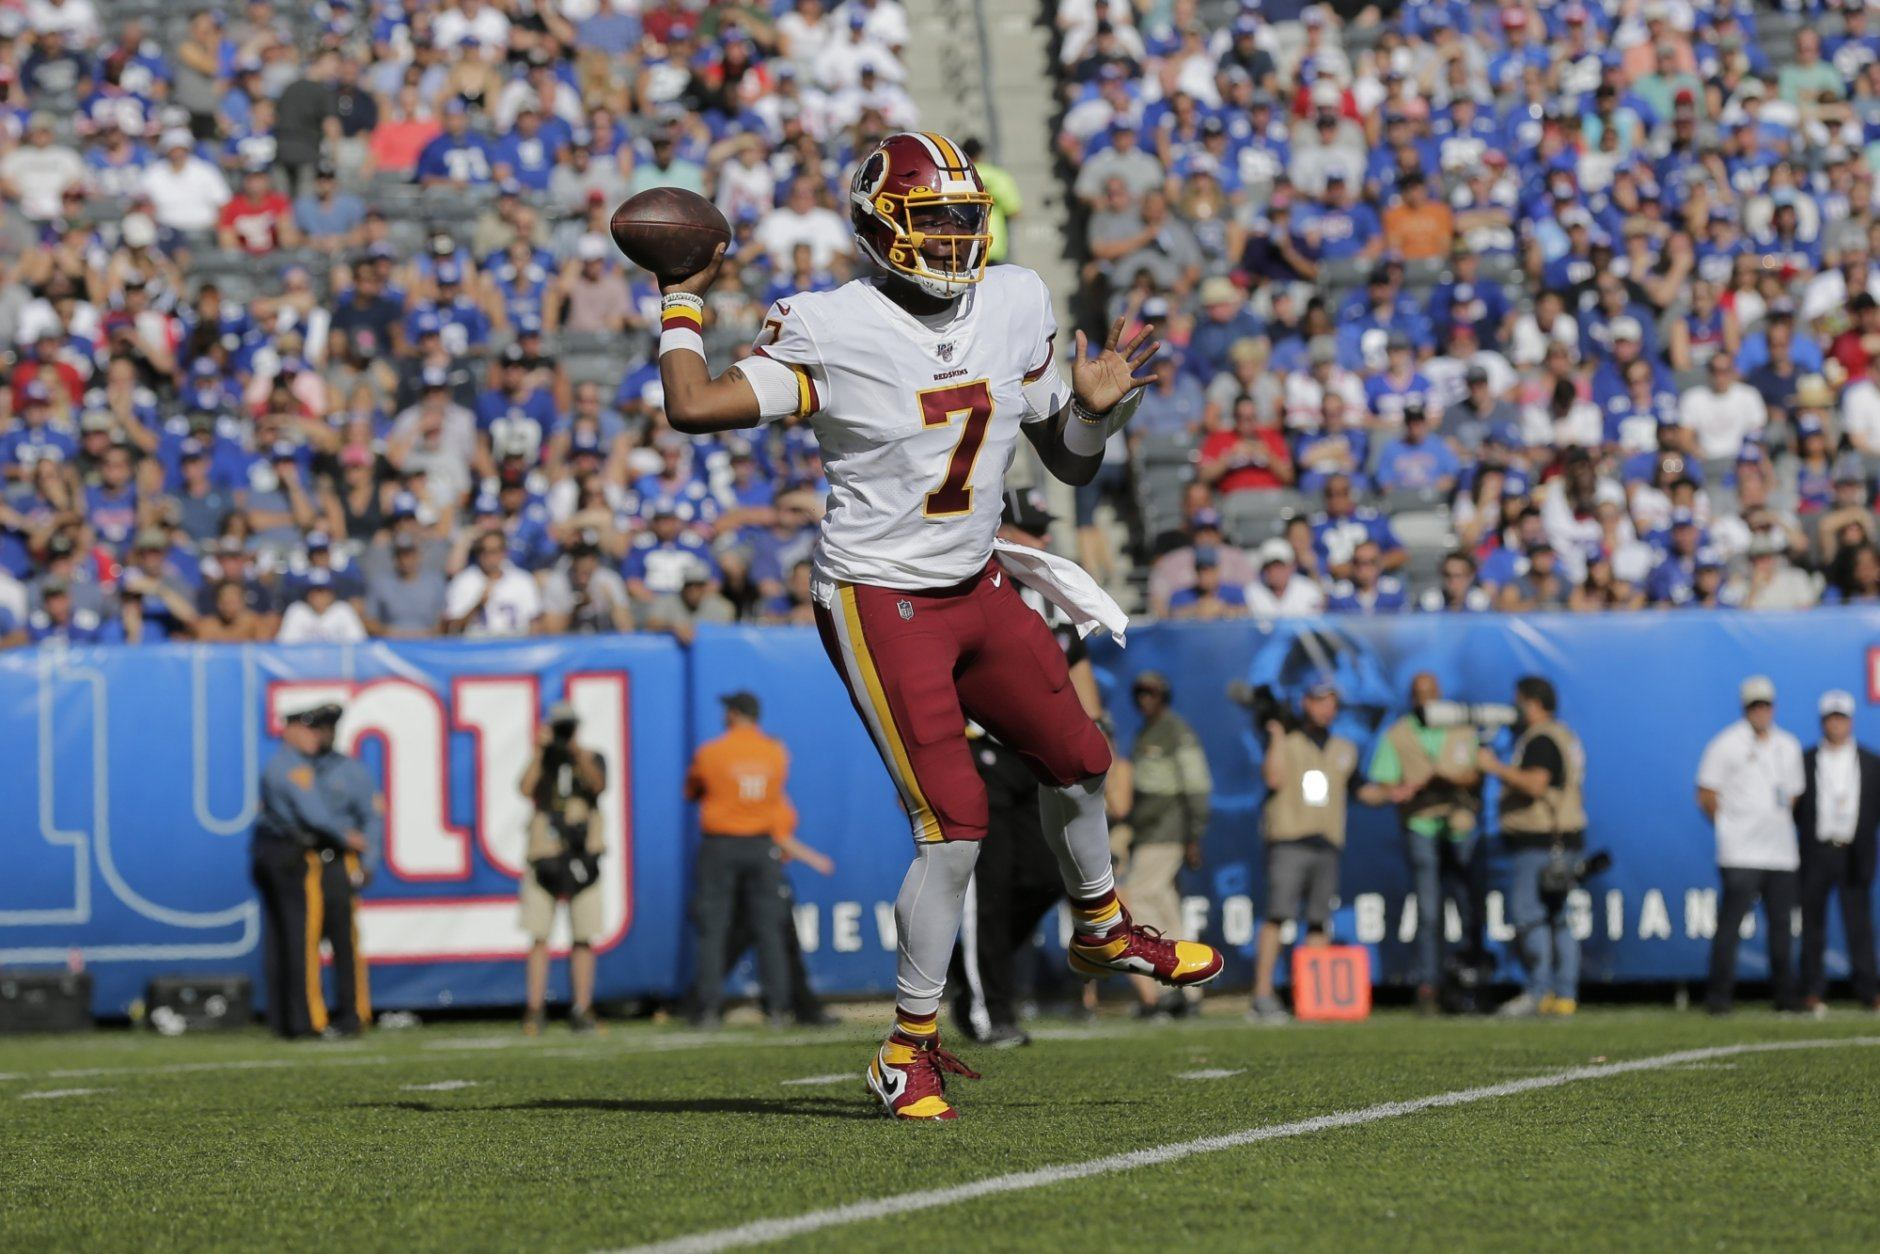 Washington Redskins quarterback Dwayne Haskins throws during the second half of an NFL football game against the New York Giants, Sunday, Sept. 29, 2019, in East Rutherford, N.J. (AP Photo/Adam Hunger)